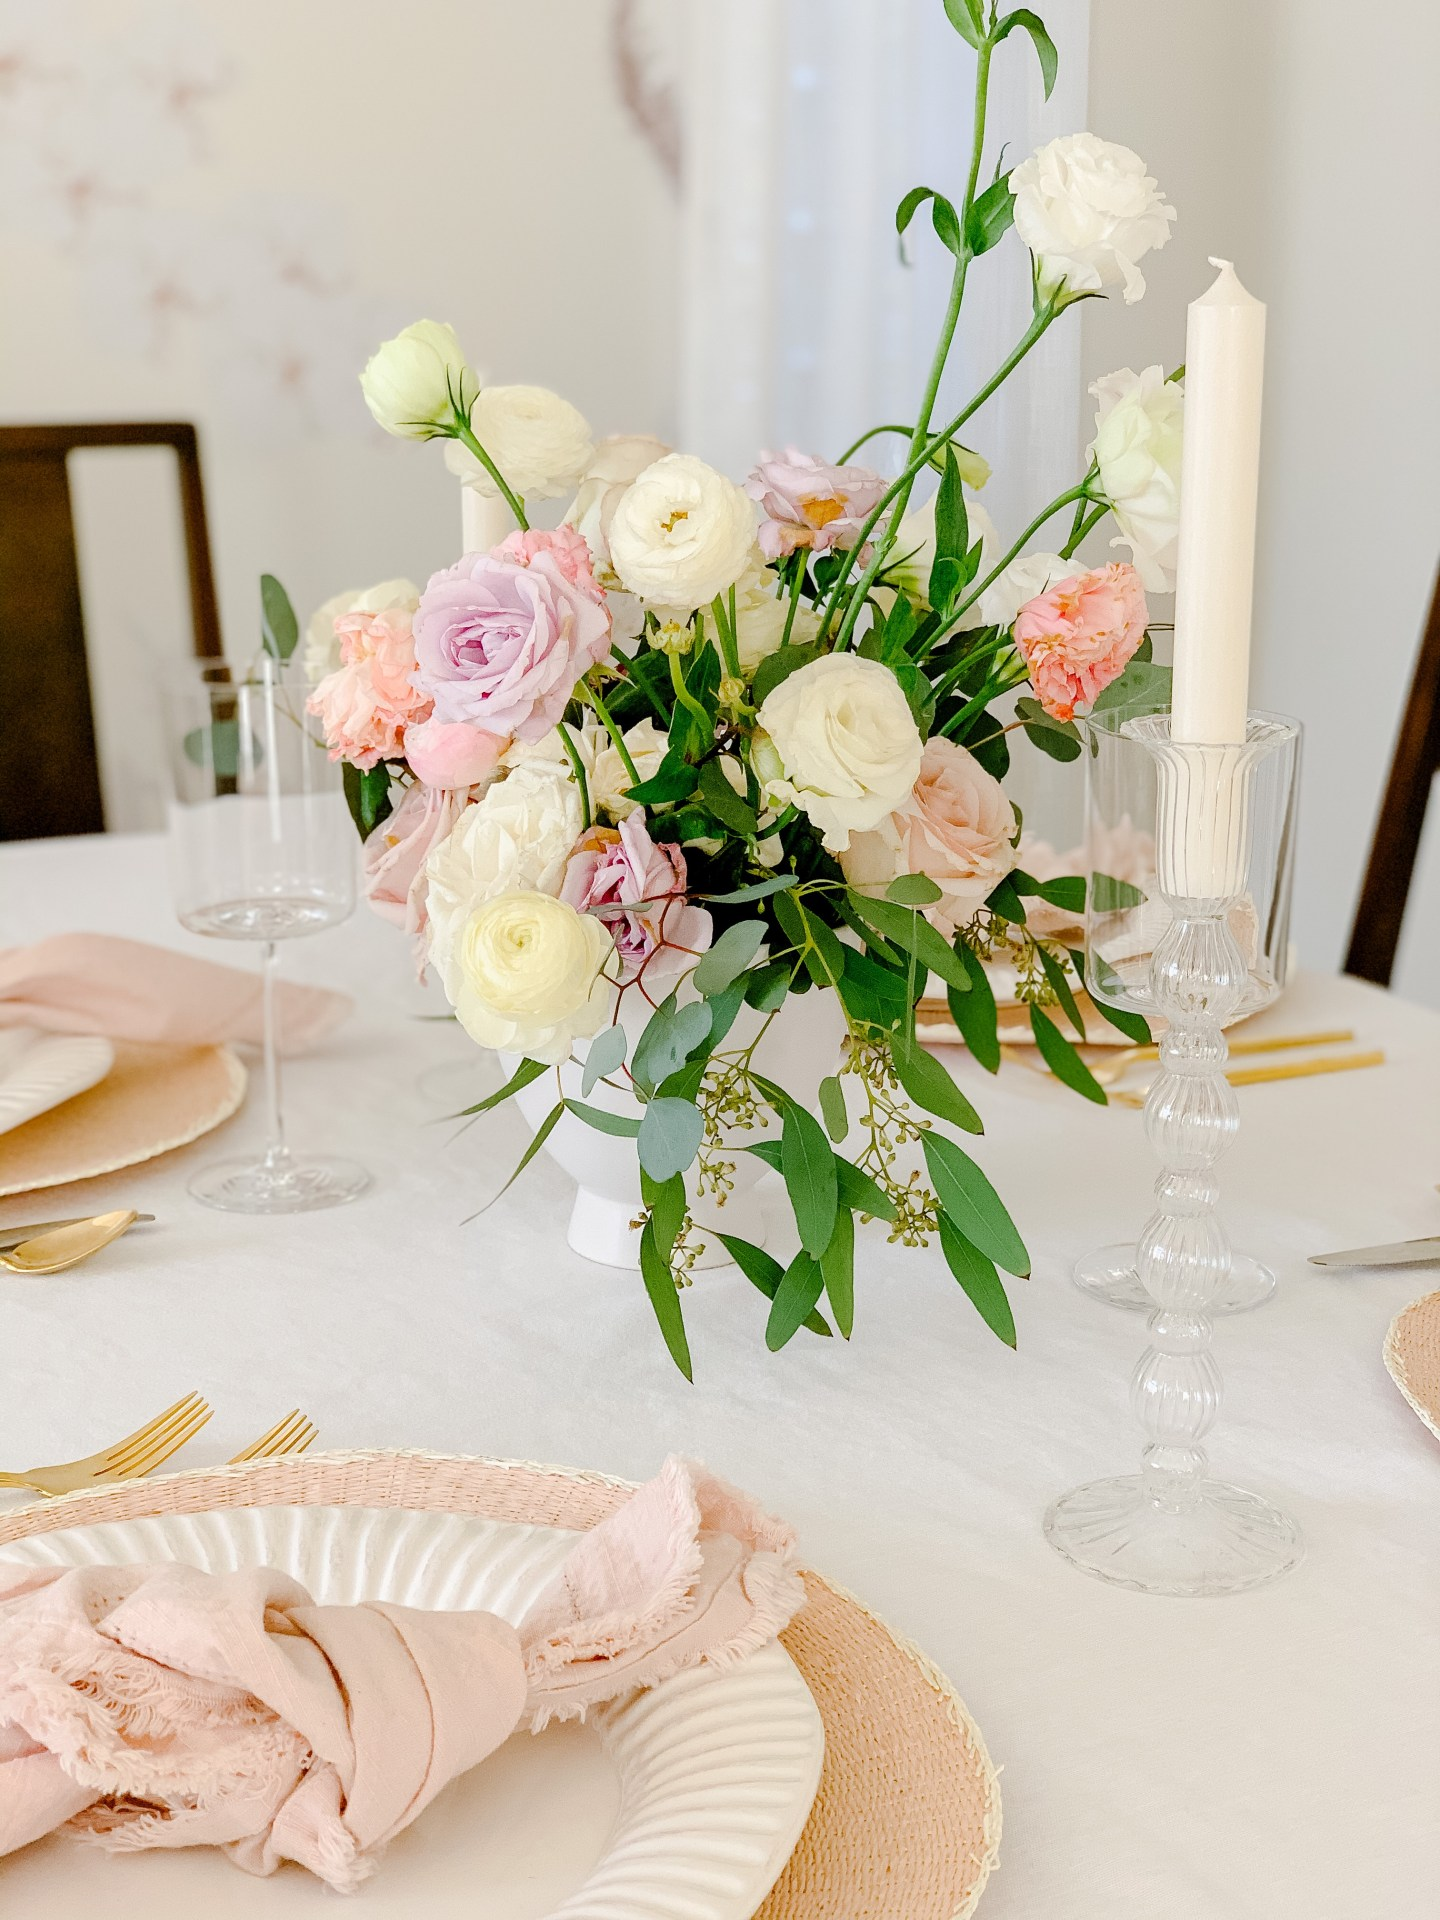 Simply Beautiful Valentine's Day Table Setting